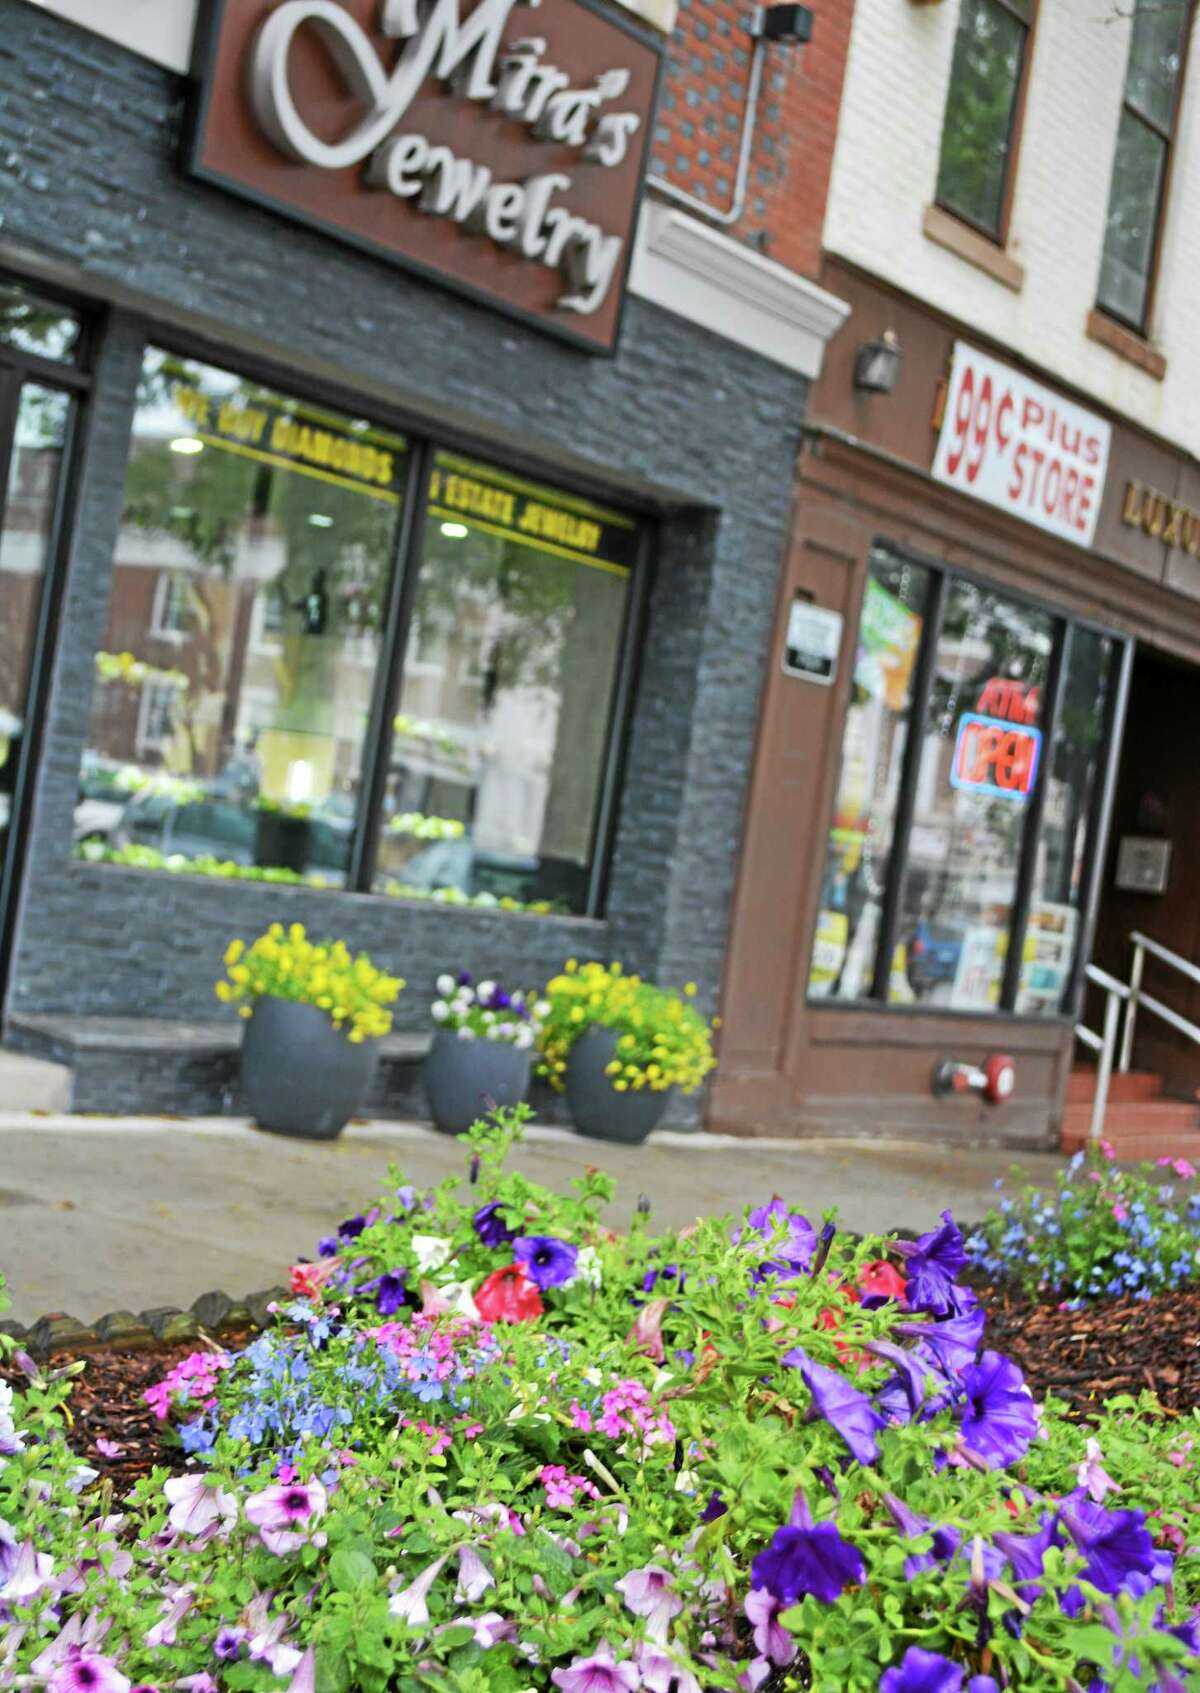 The sidewalk in front of Mira Jewelry in Middletown is enhanced by the planting of pink and green flowers.